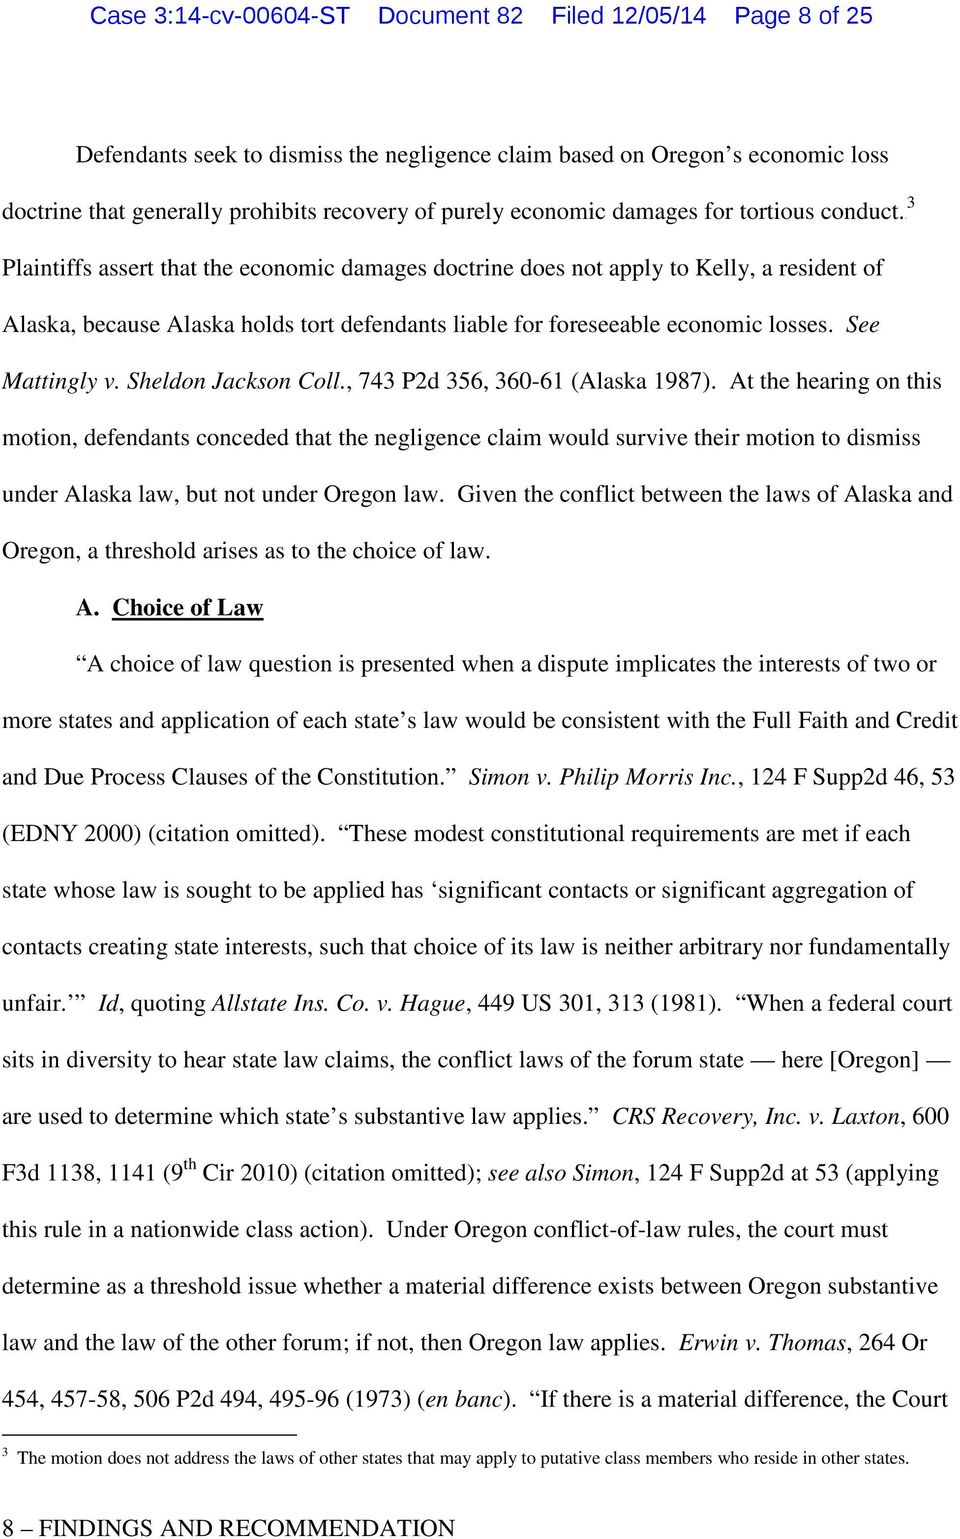 2f Plaintiffs assert that the economic damages doctrine does not apply to Kelly, a resident of Alaska, because Alaska holds tort defendants liable for foreseeable economic losses. See Mattingly v.